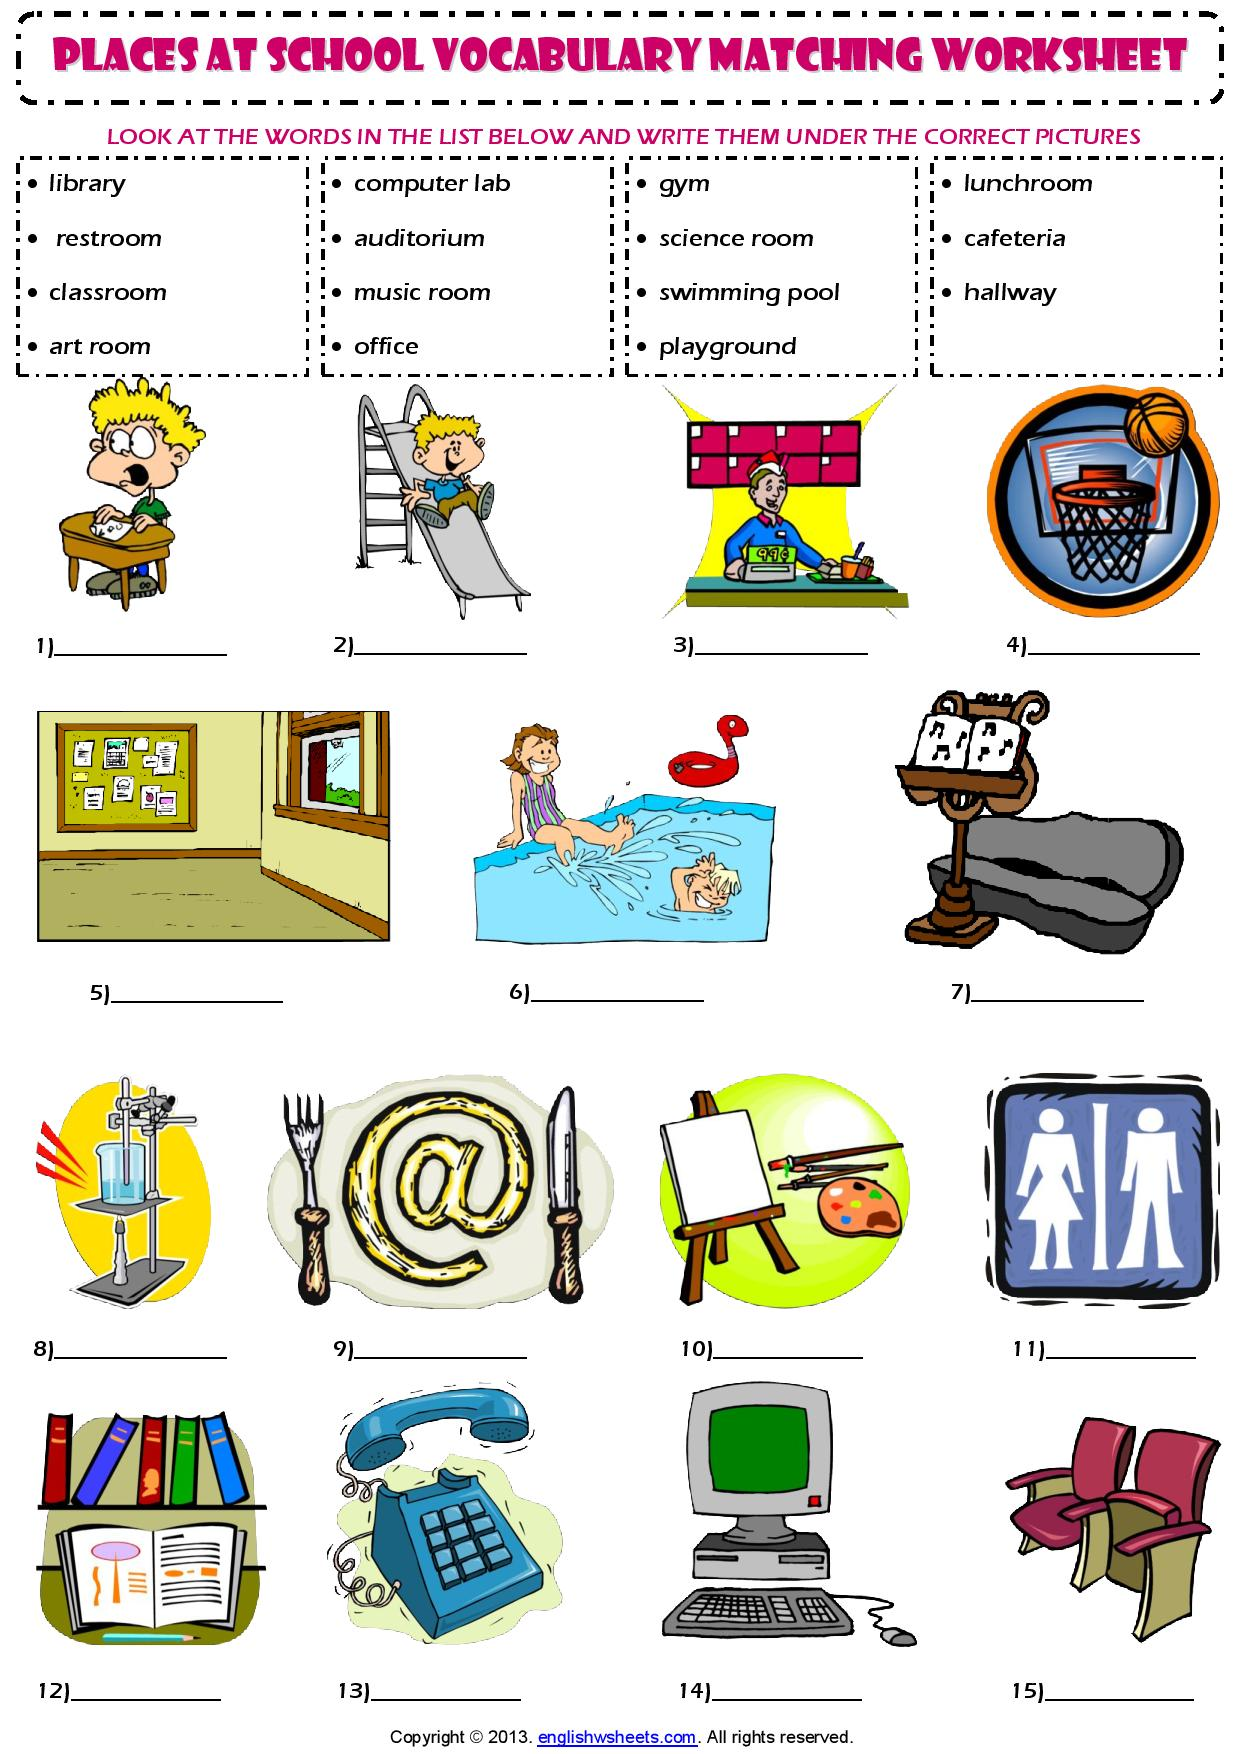 Places At School Vocabulary Matching Exercise Worksheet